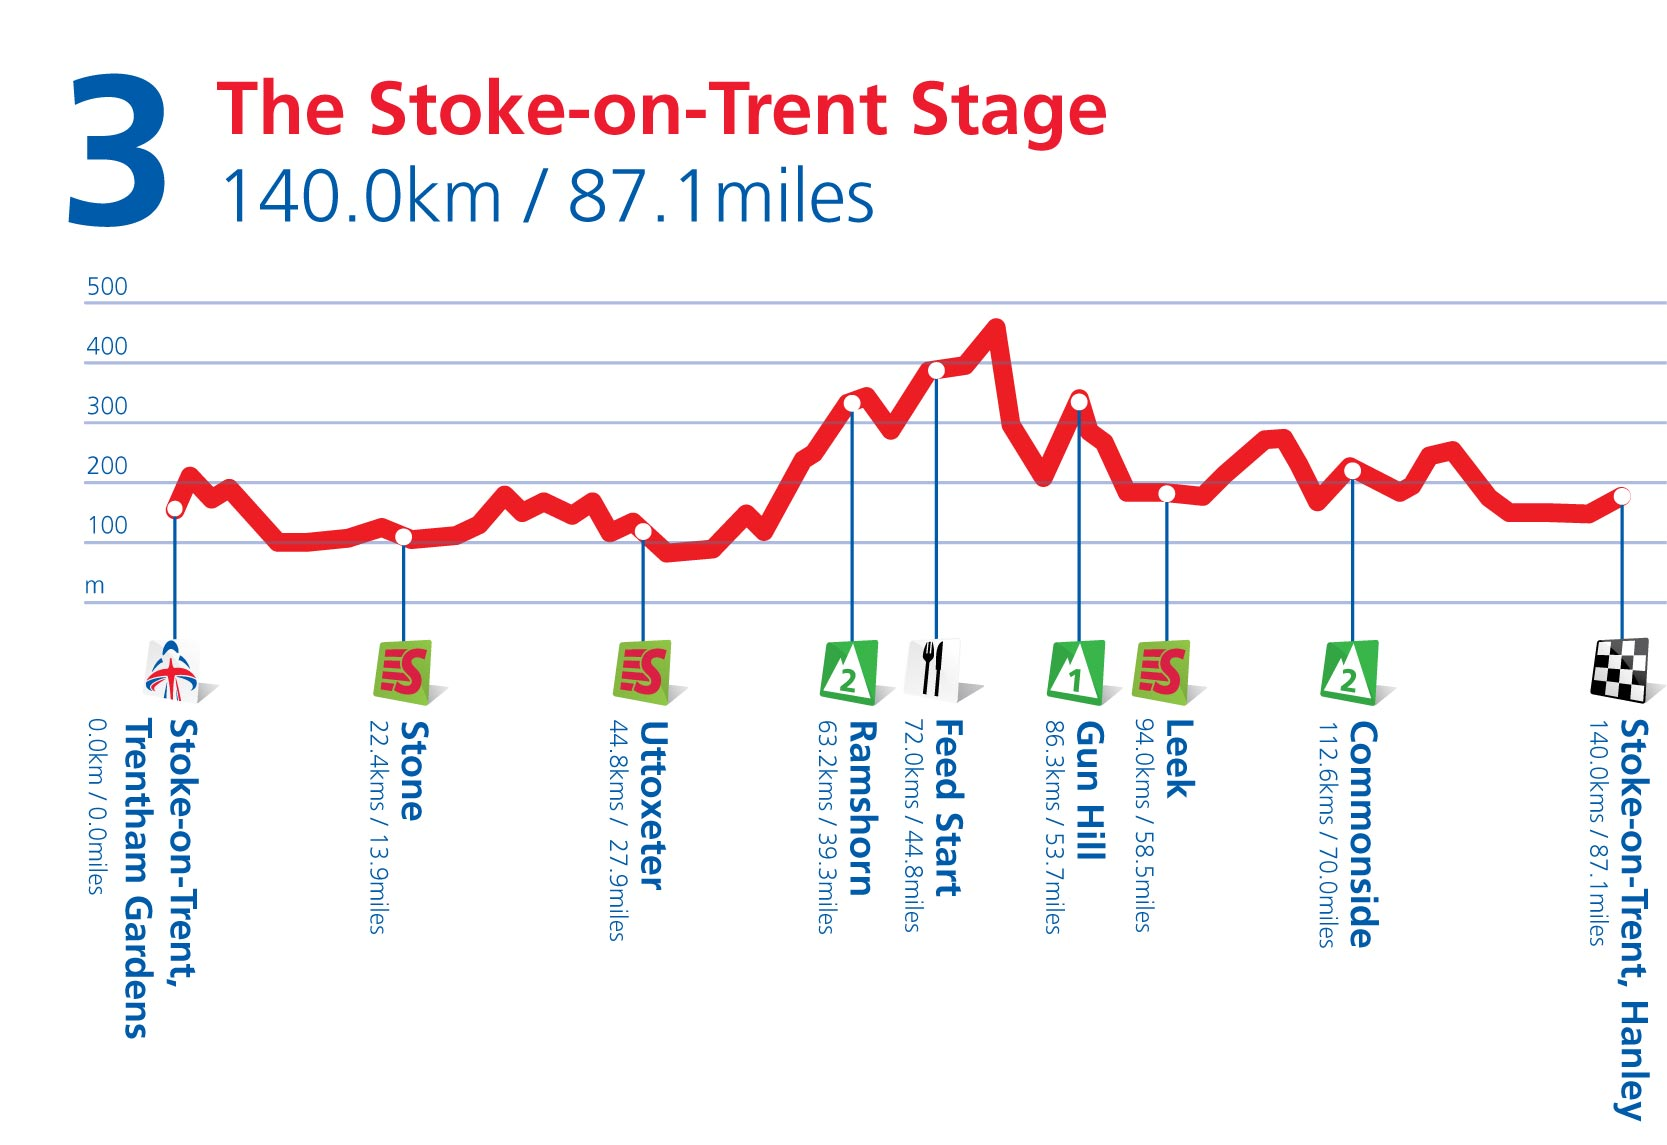 Stage 3 profile, Tour of Britain 2011